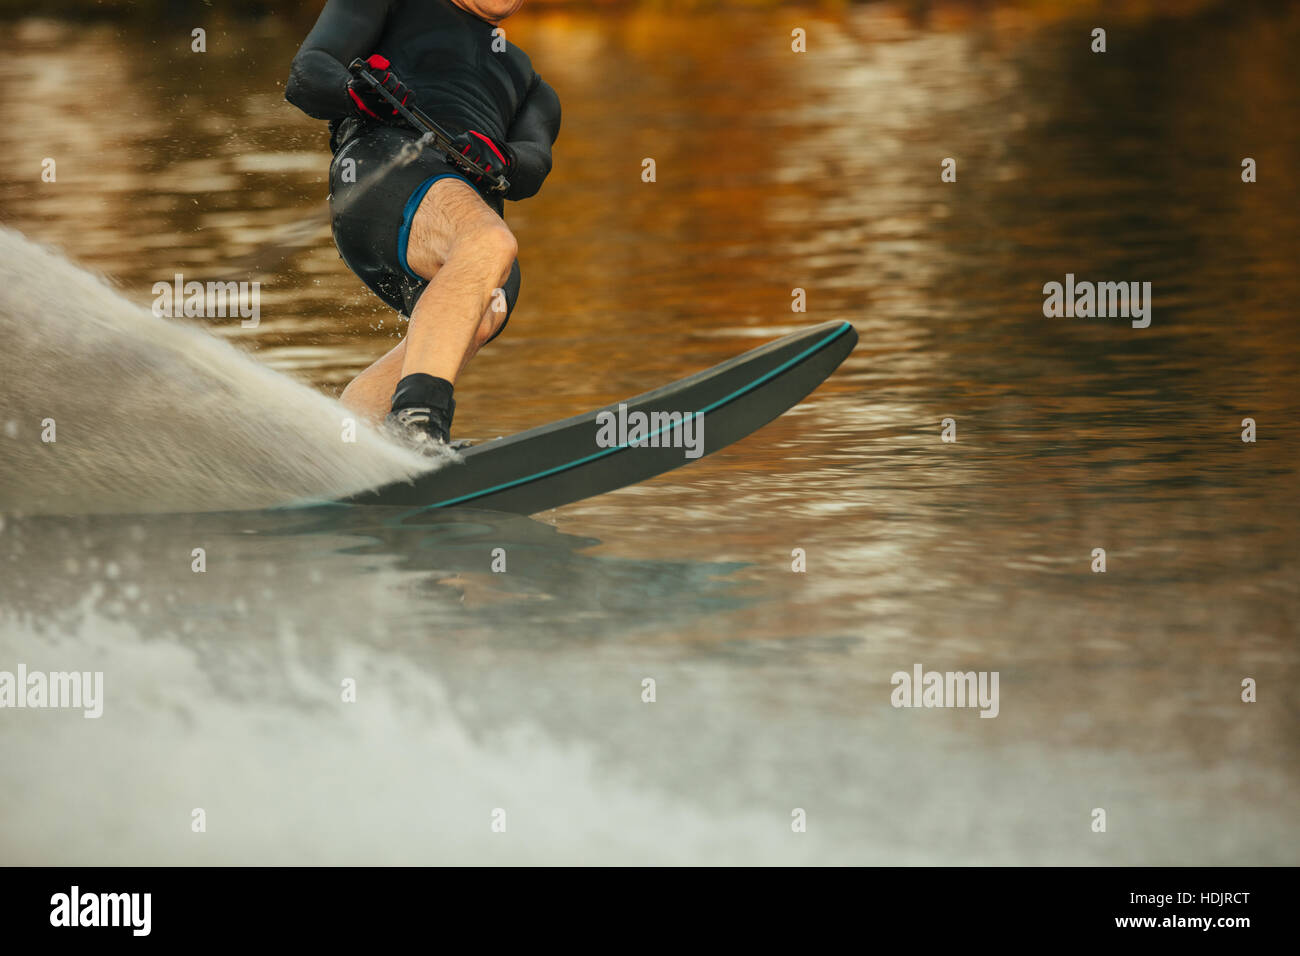 Man riding wakeboard on a lake. Male water skiing and surfing across the lake. - Stock Image